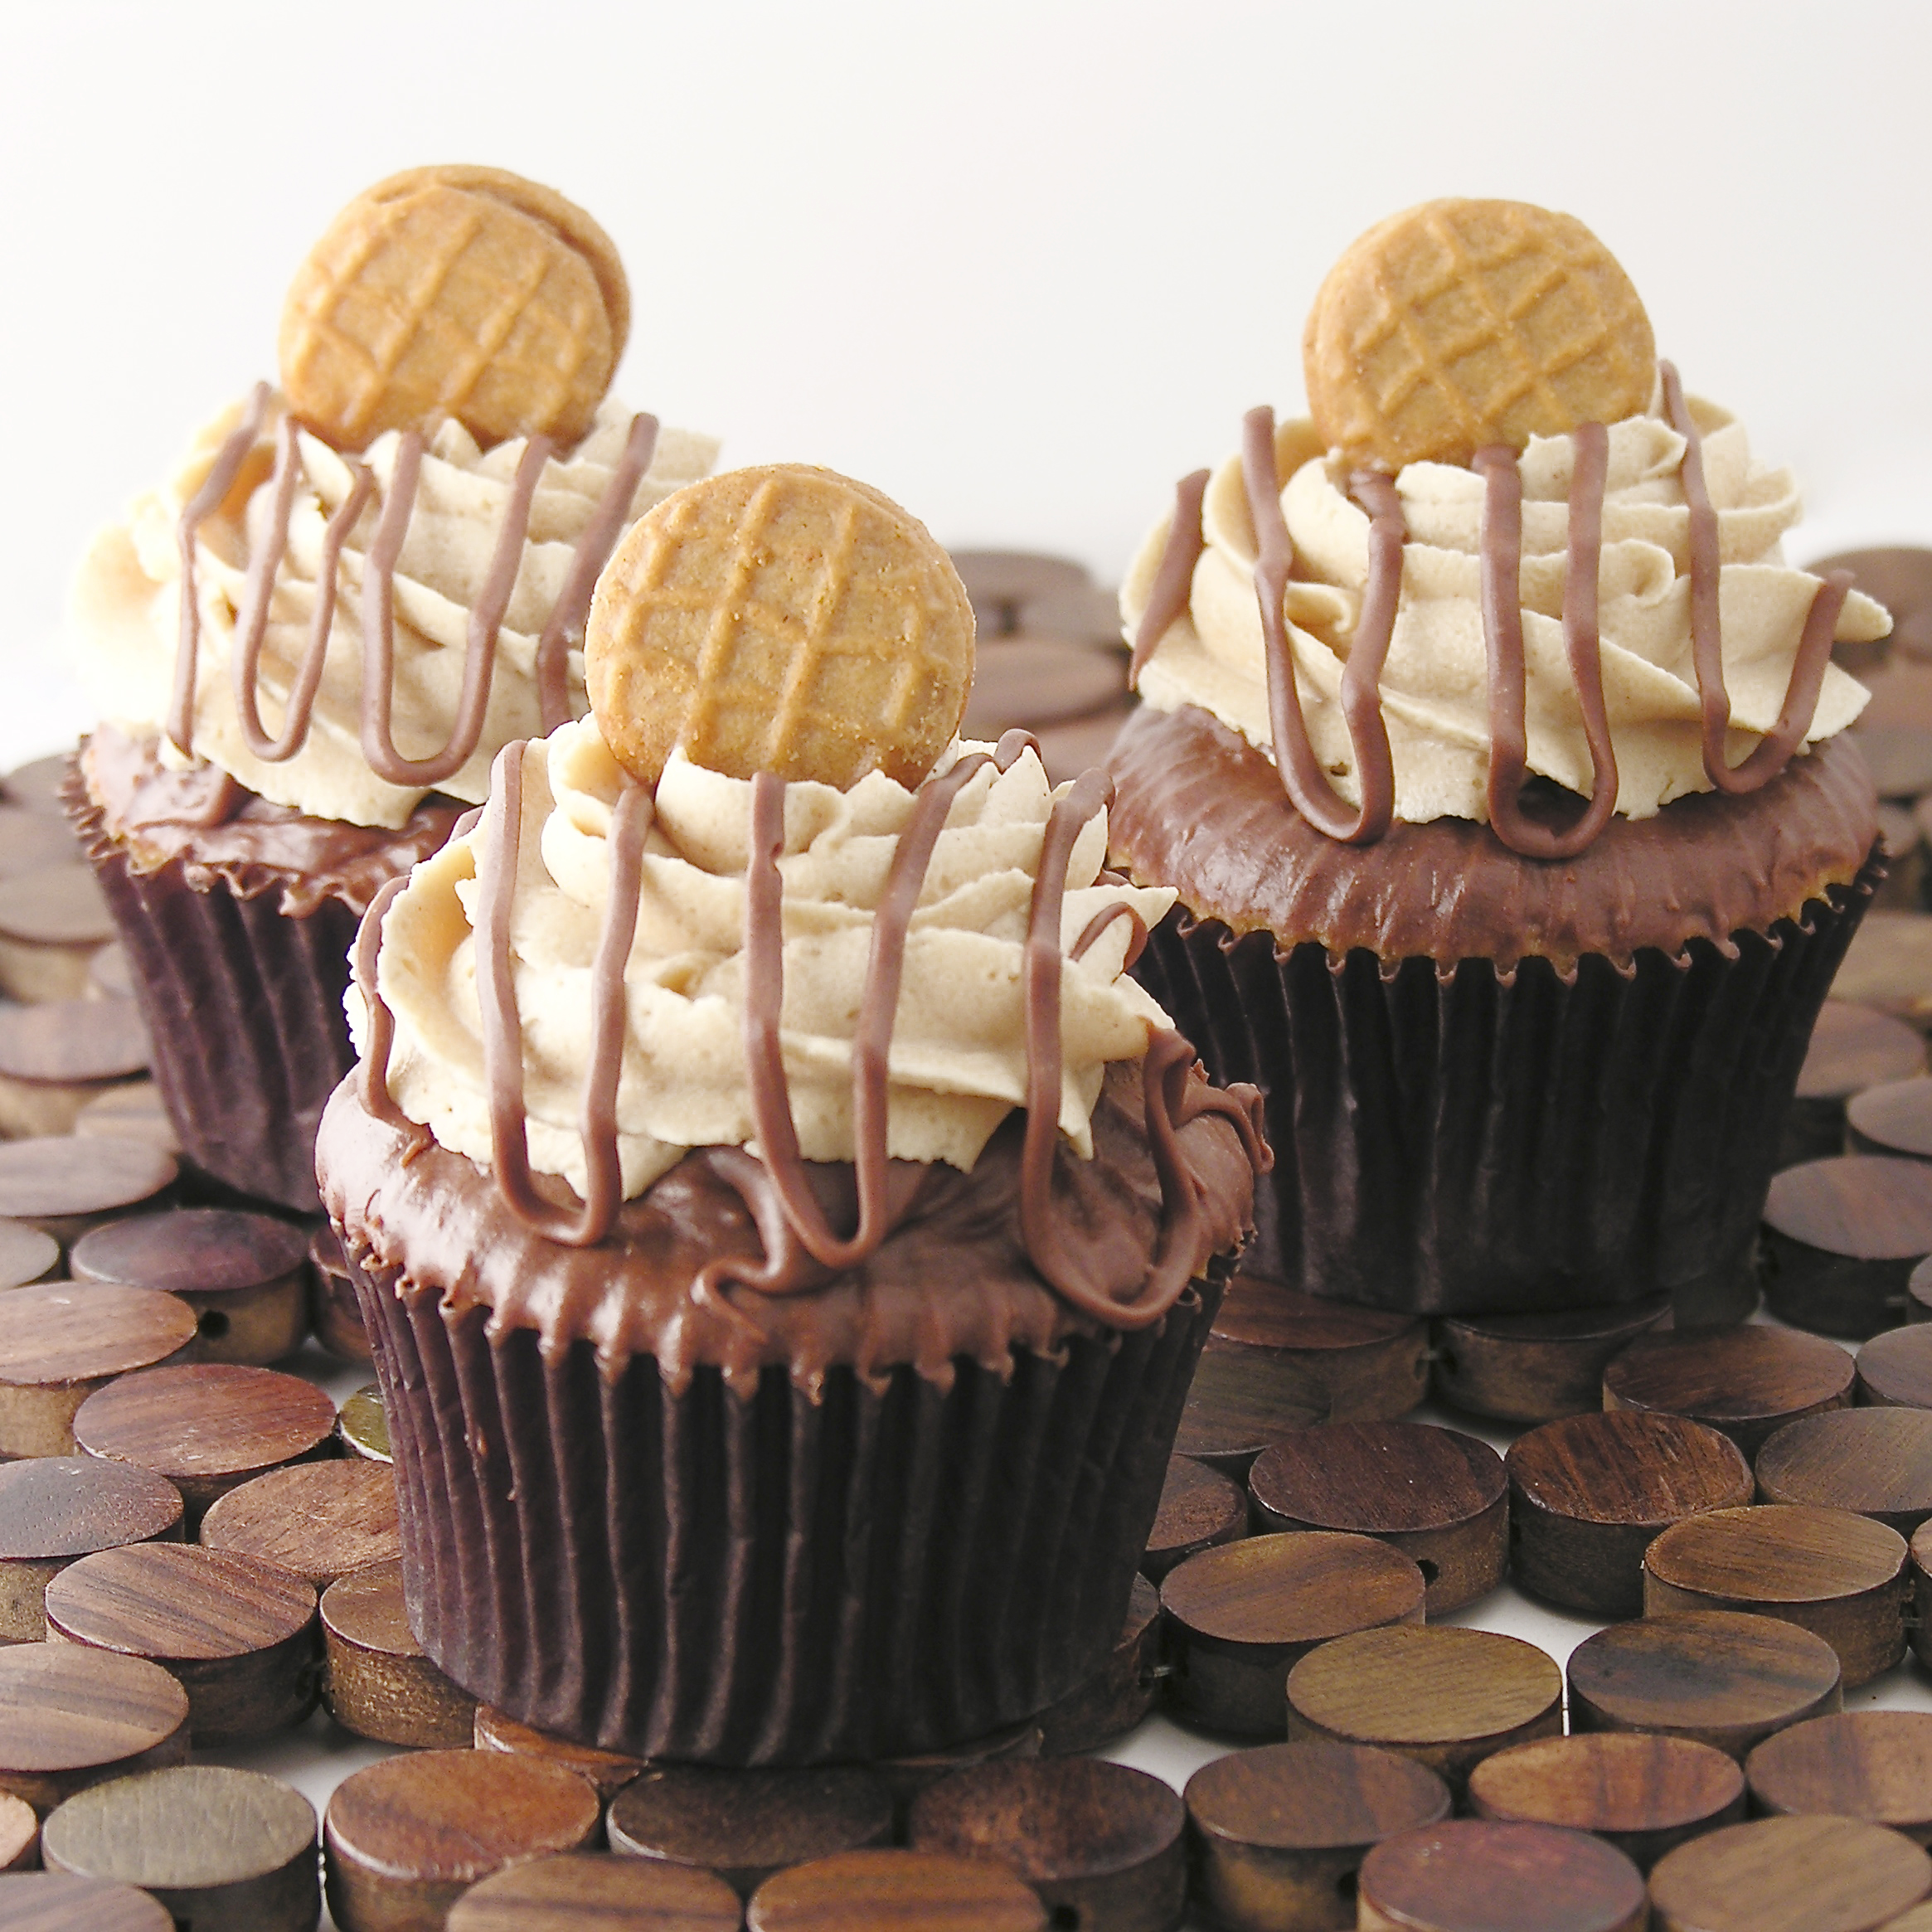 ... peanut butter cream icing and a mini peanut butter cookie. This is a